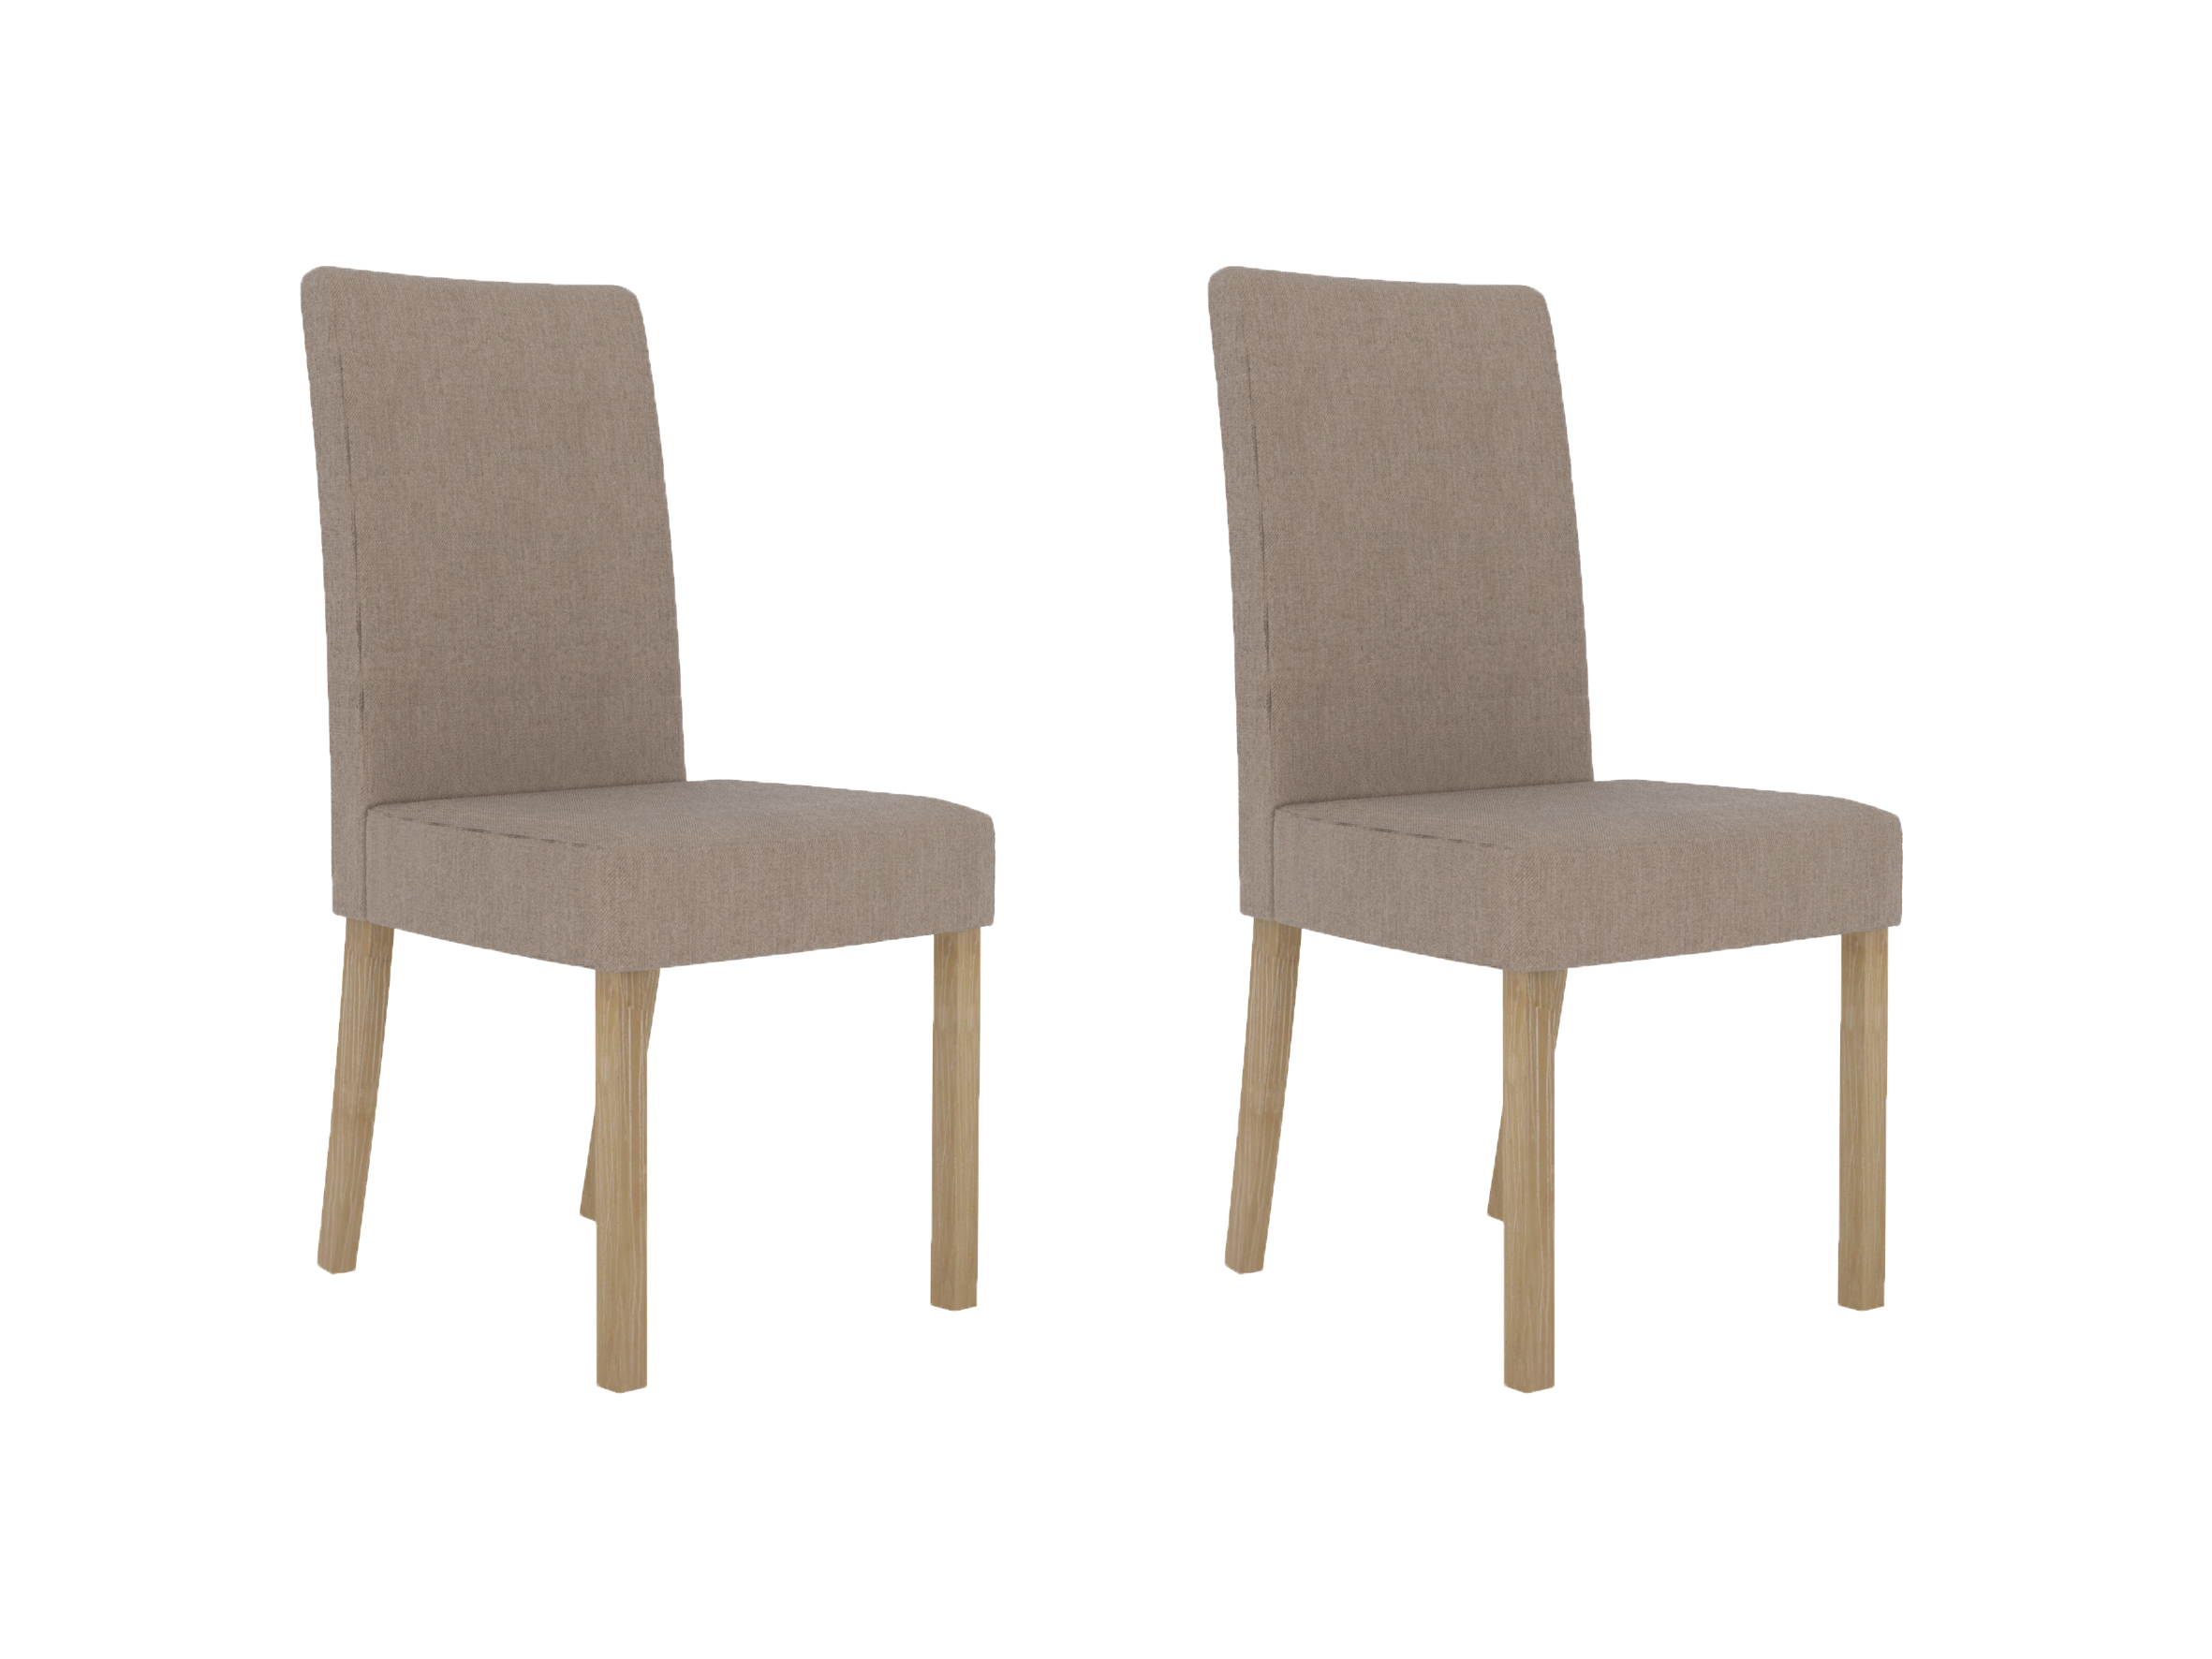 Melodie Chair Beige (Pack of 2)